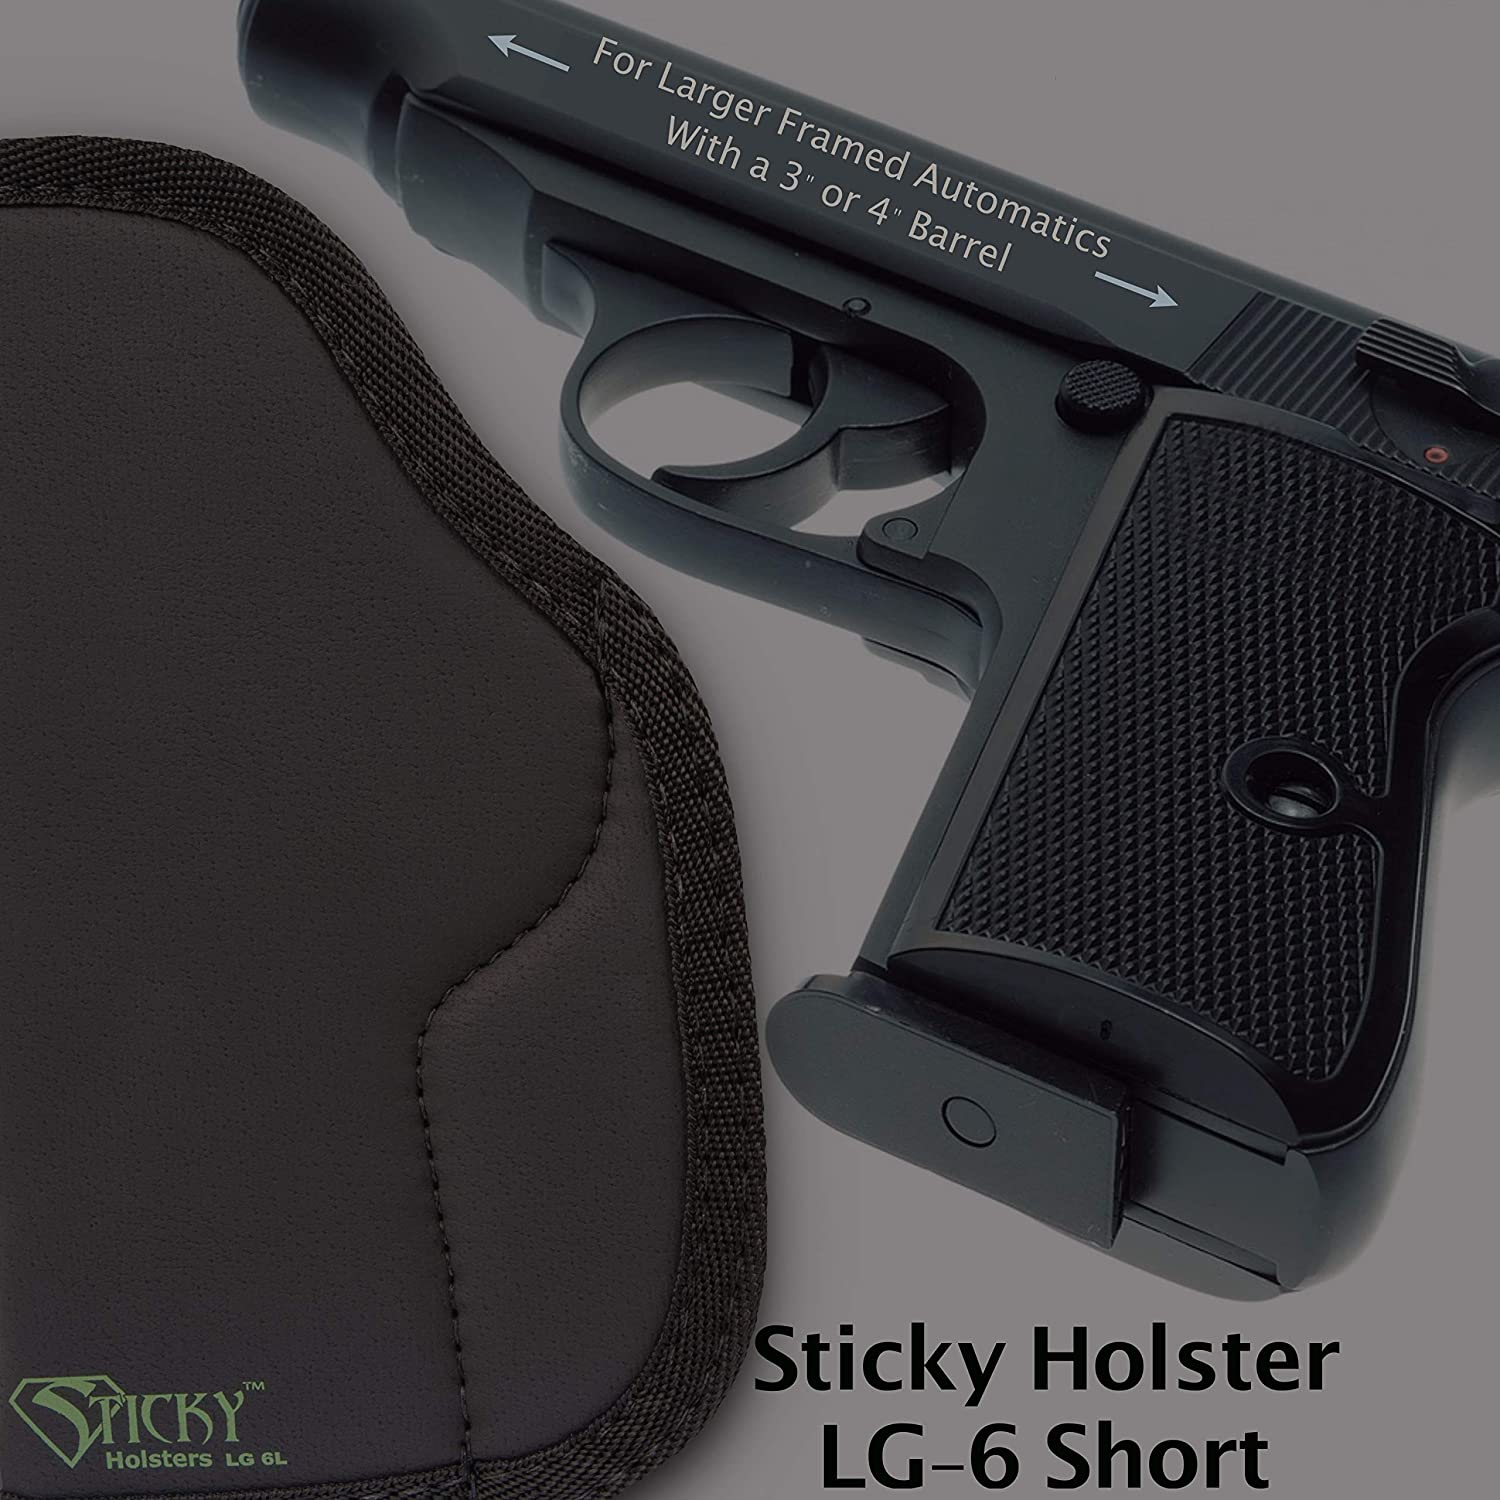 ONE NEW STICKY HOLSTER MD-4 GEN 1 FITS DOUBLE STACK SUB-COMPACT